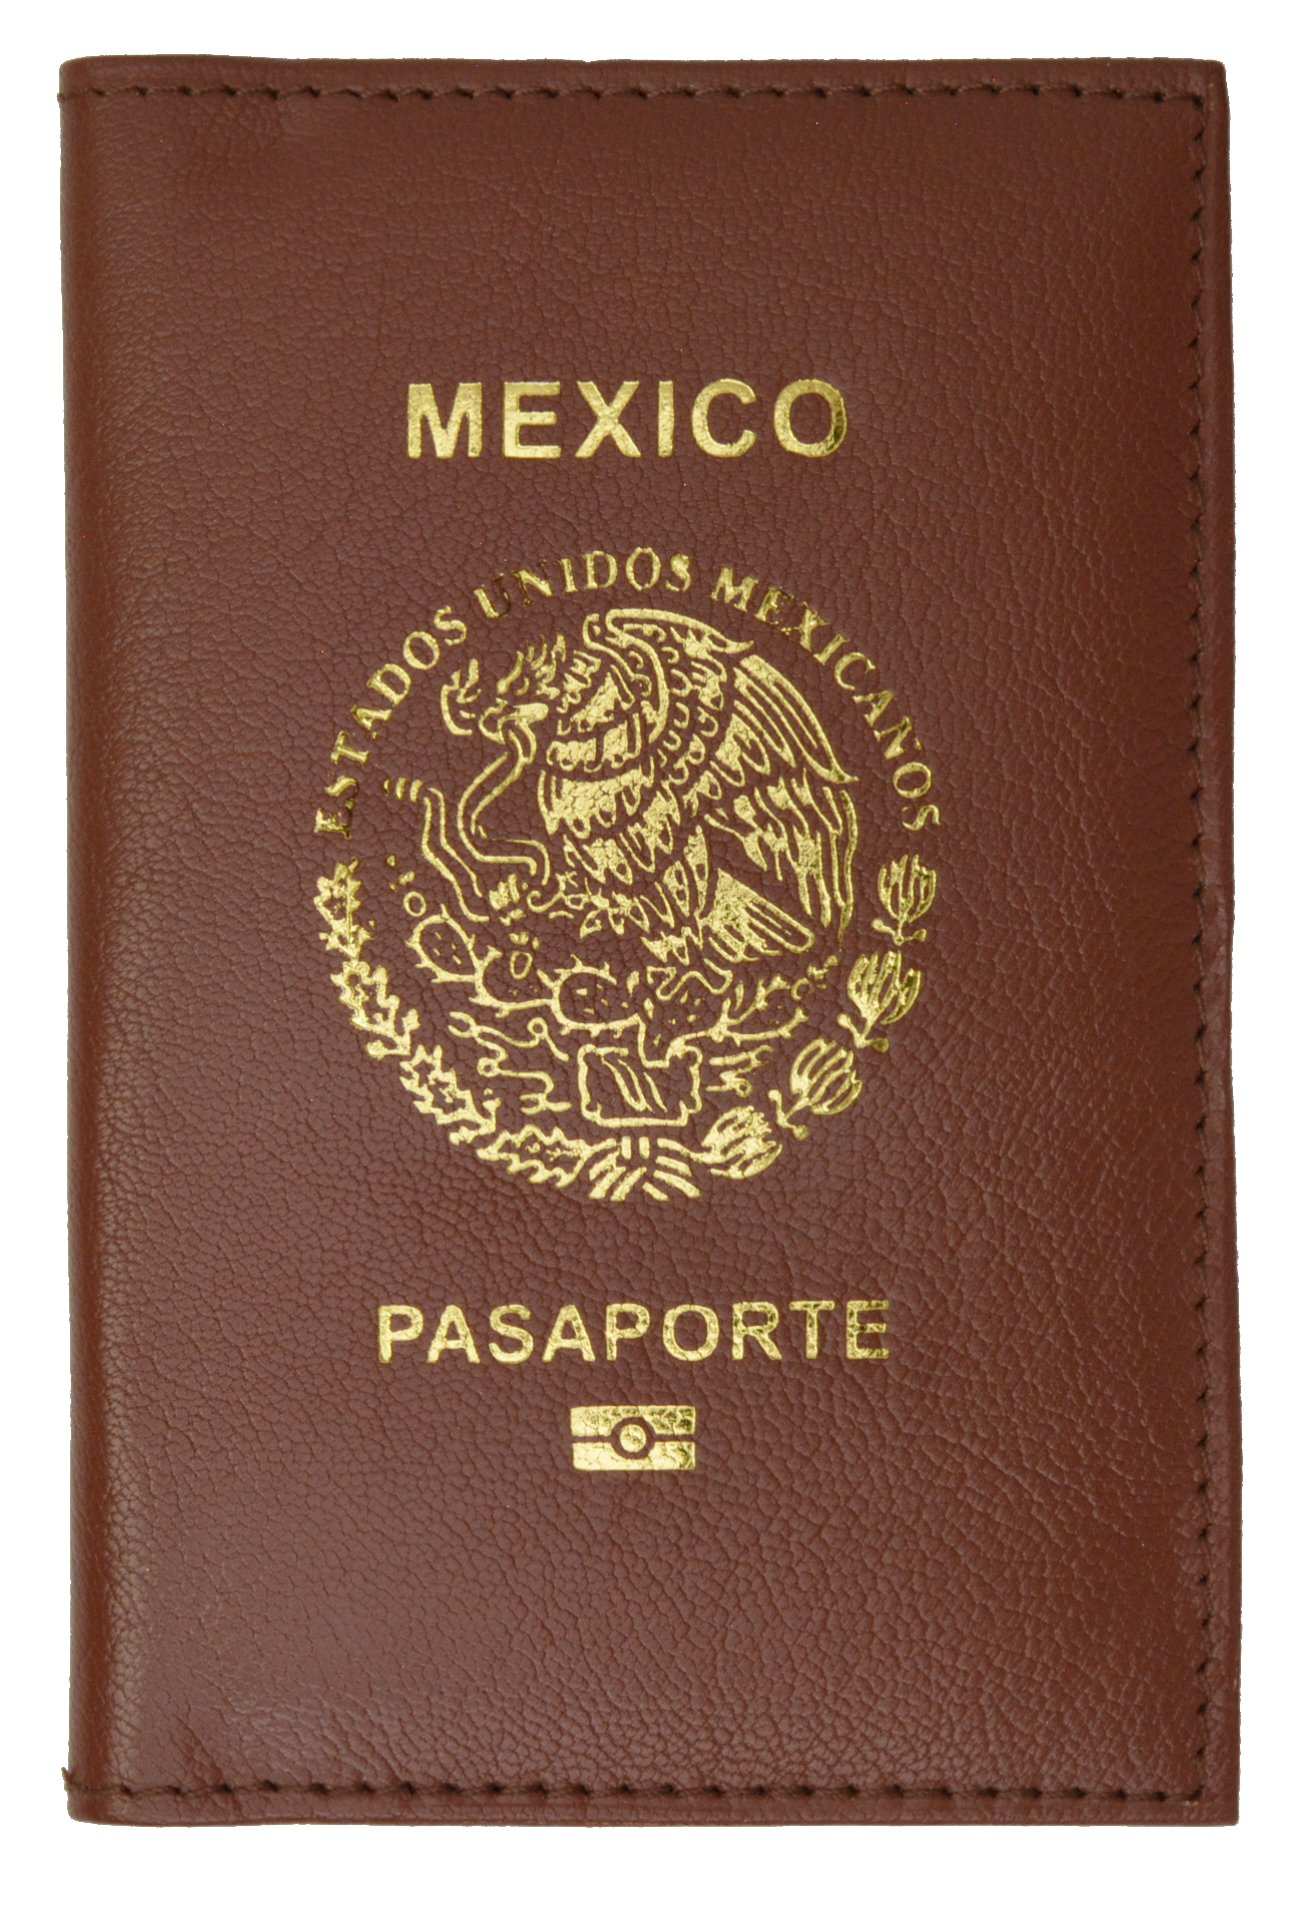 Mexico Passport Cover Genuine Leather Travel Wallet with Emblem Pasaporte (Burgundy)